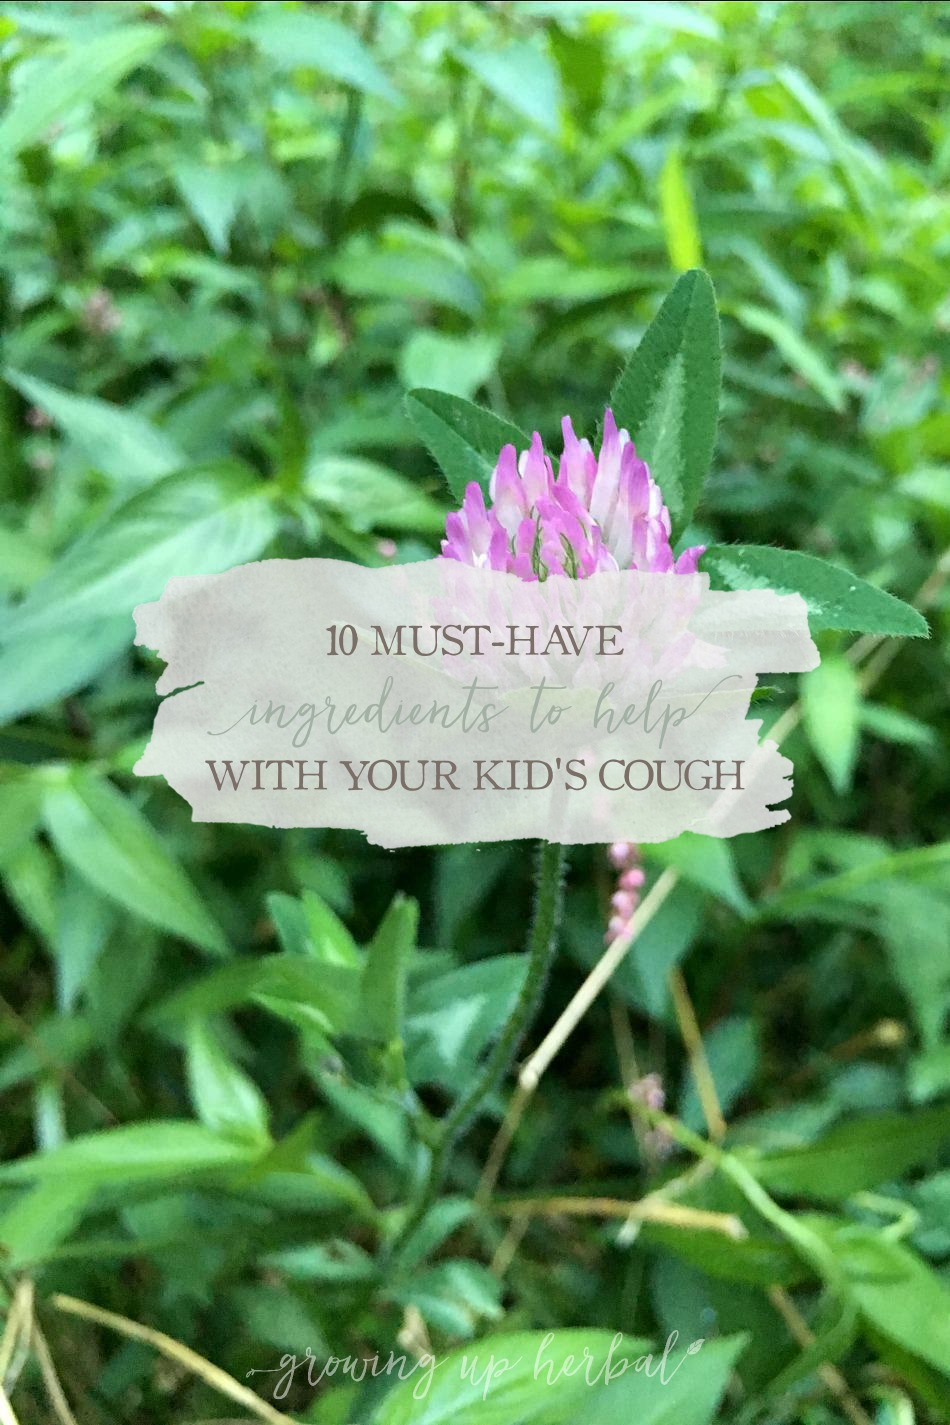 10 Must-Have Ingredients To Help With Your Kids Cough | Growing Up Herbal | Kids get coughs... it's that simple. Here are 10 ingredients to keep on hand to help calm their coughs naturally.